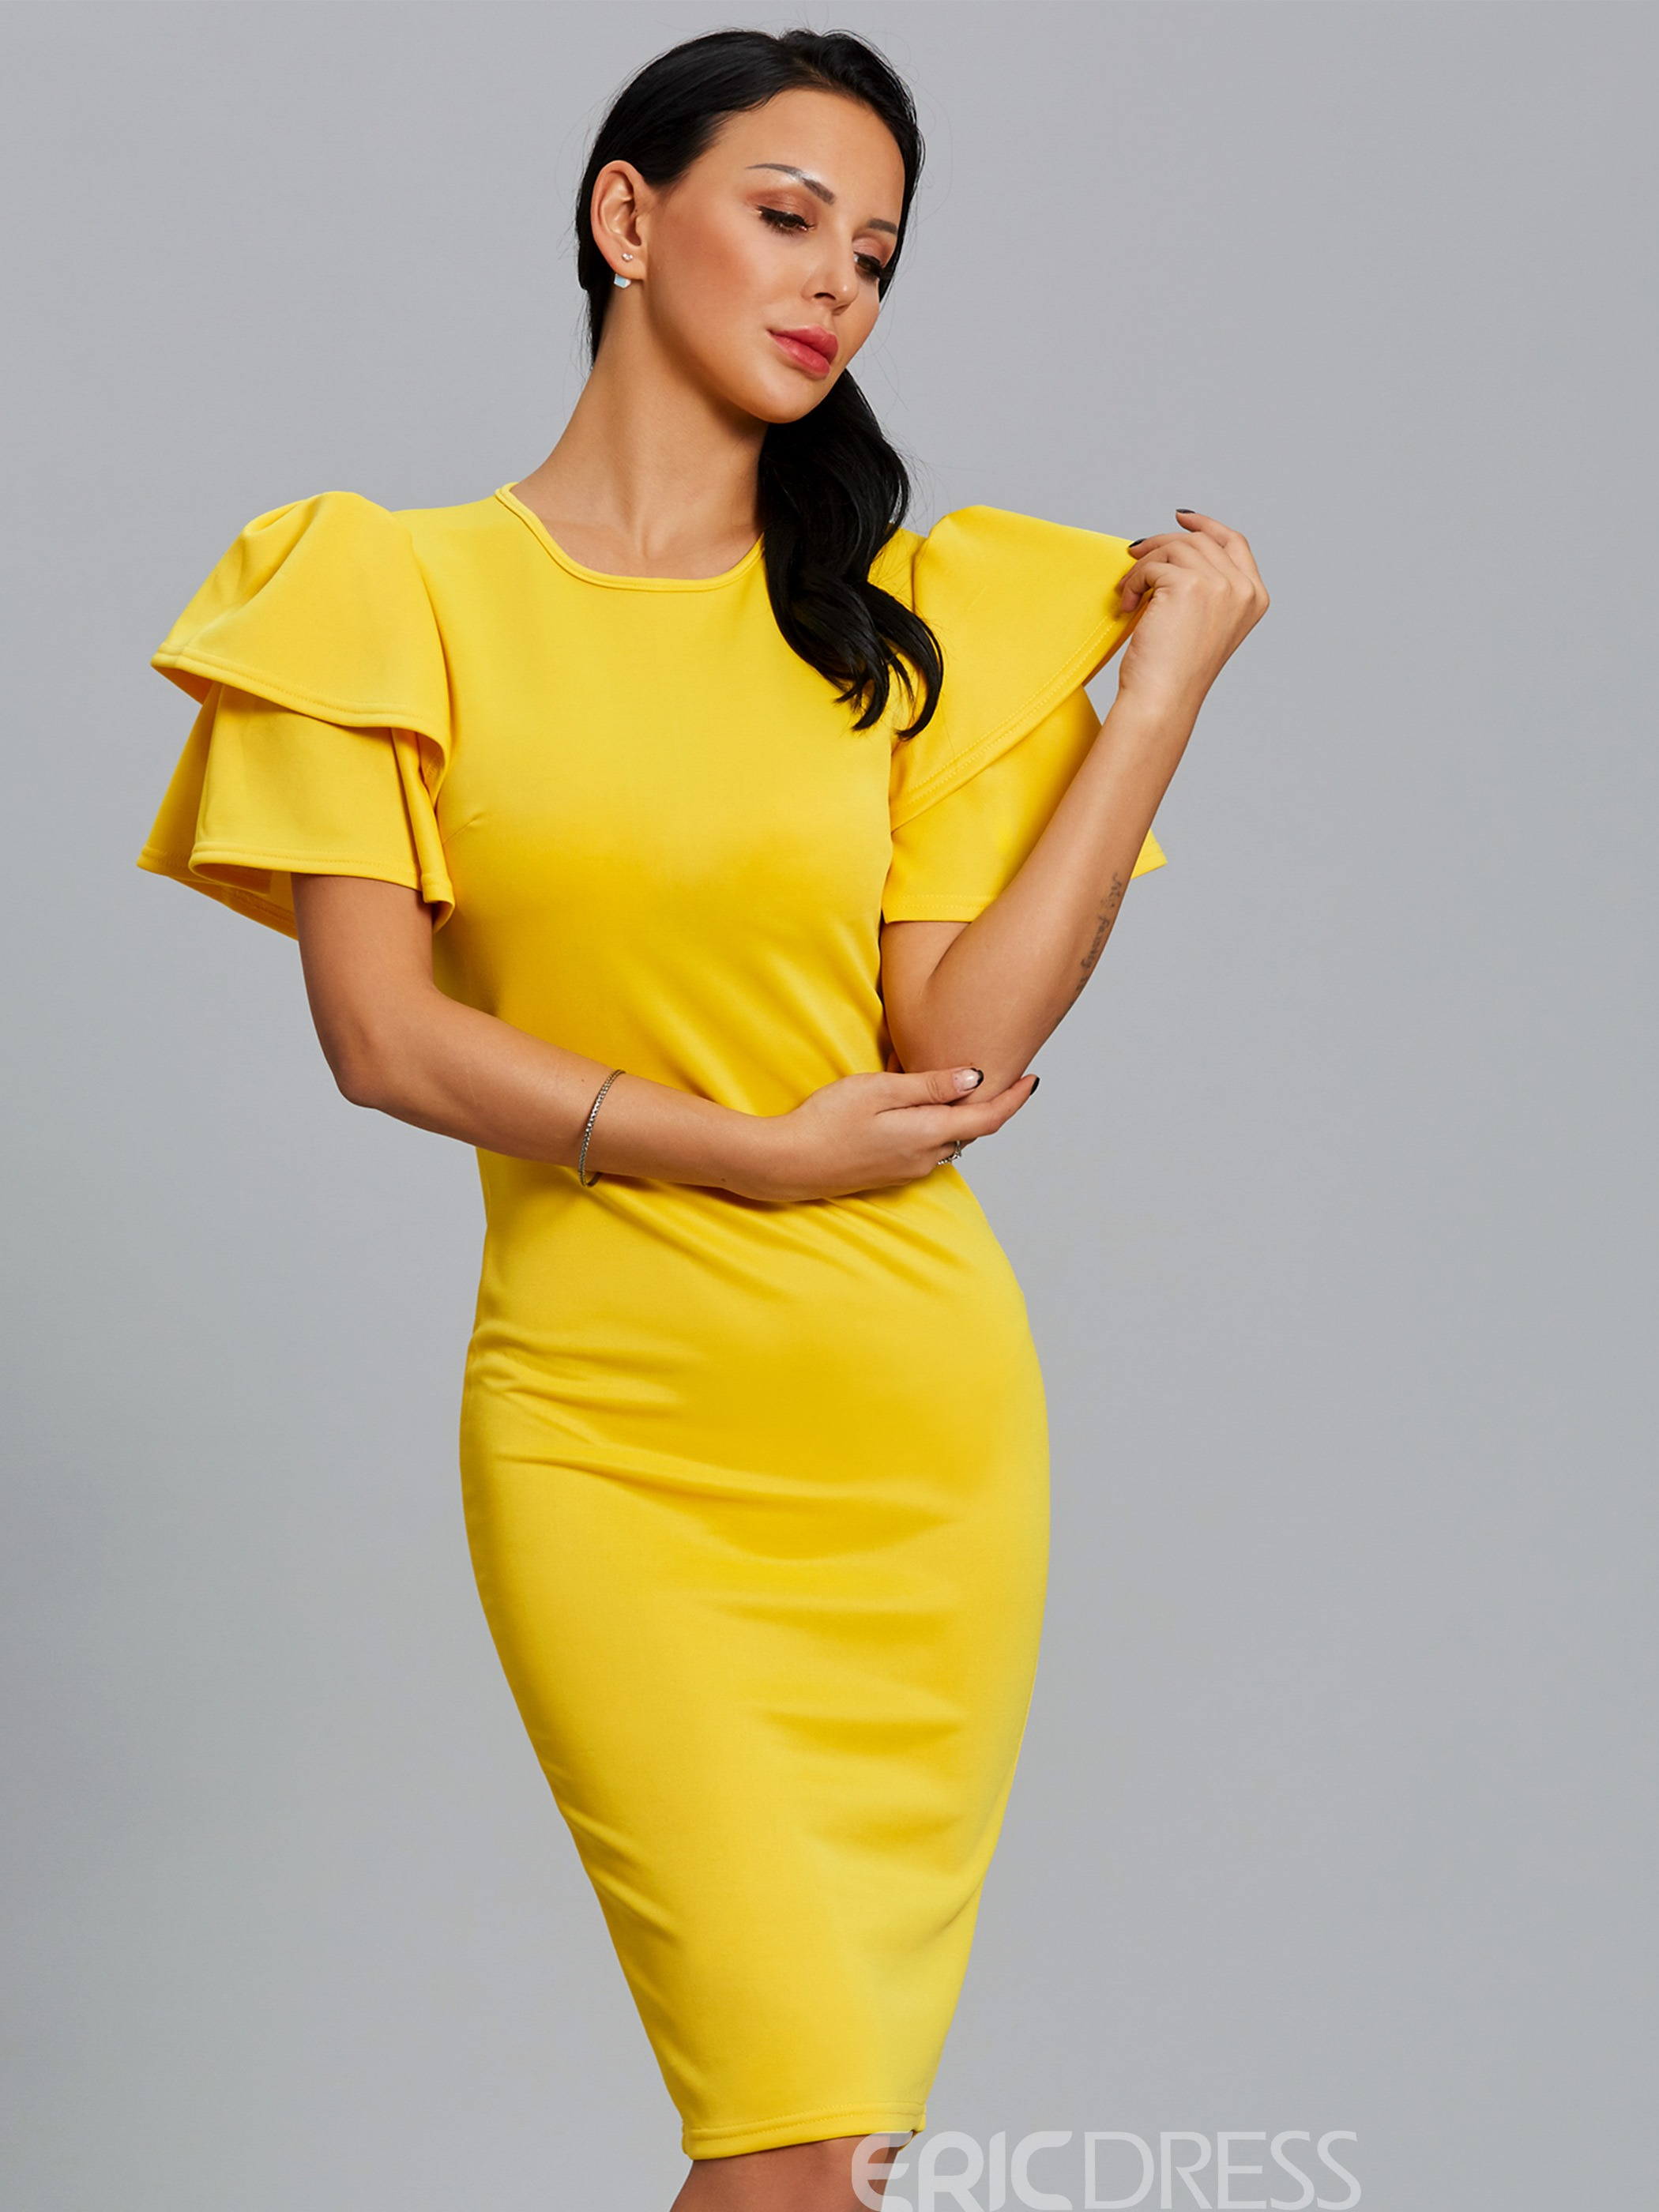 1839dc69fa16 Ericdress Solid Color Puff Sleeve Zipper Bodycon Dress 12913968 ...